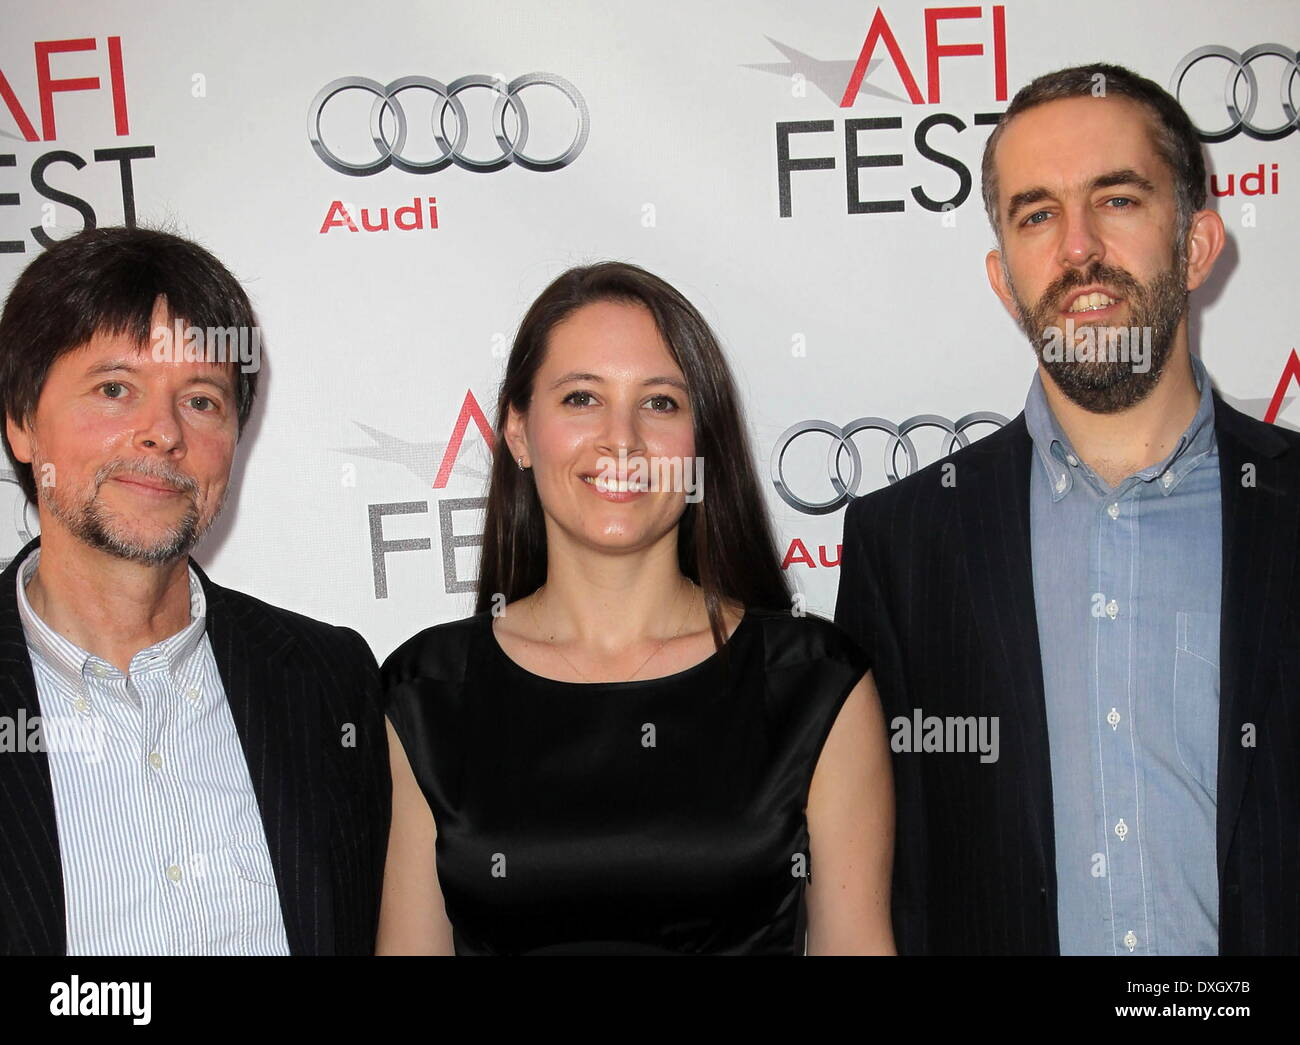 Ken Burns Sarah Burns David Mcmahon Afi Fest The Central Park Stock Photo Alamy